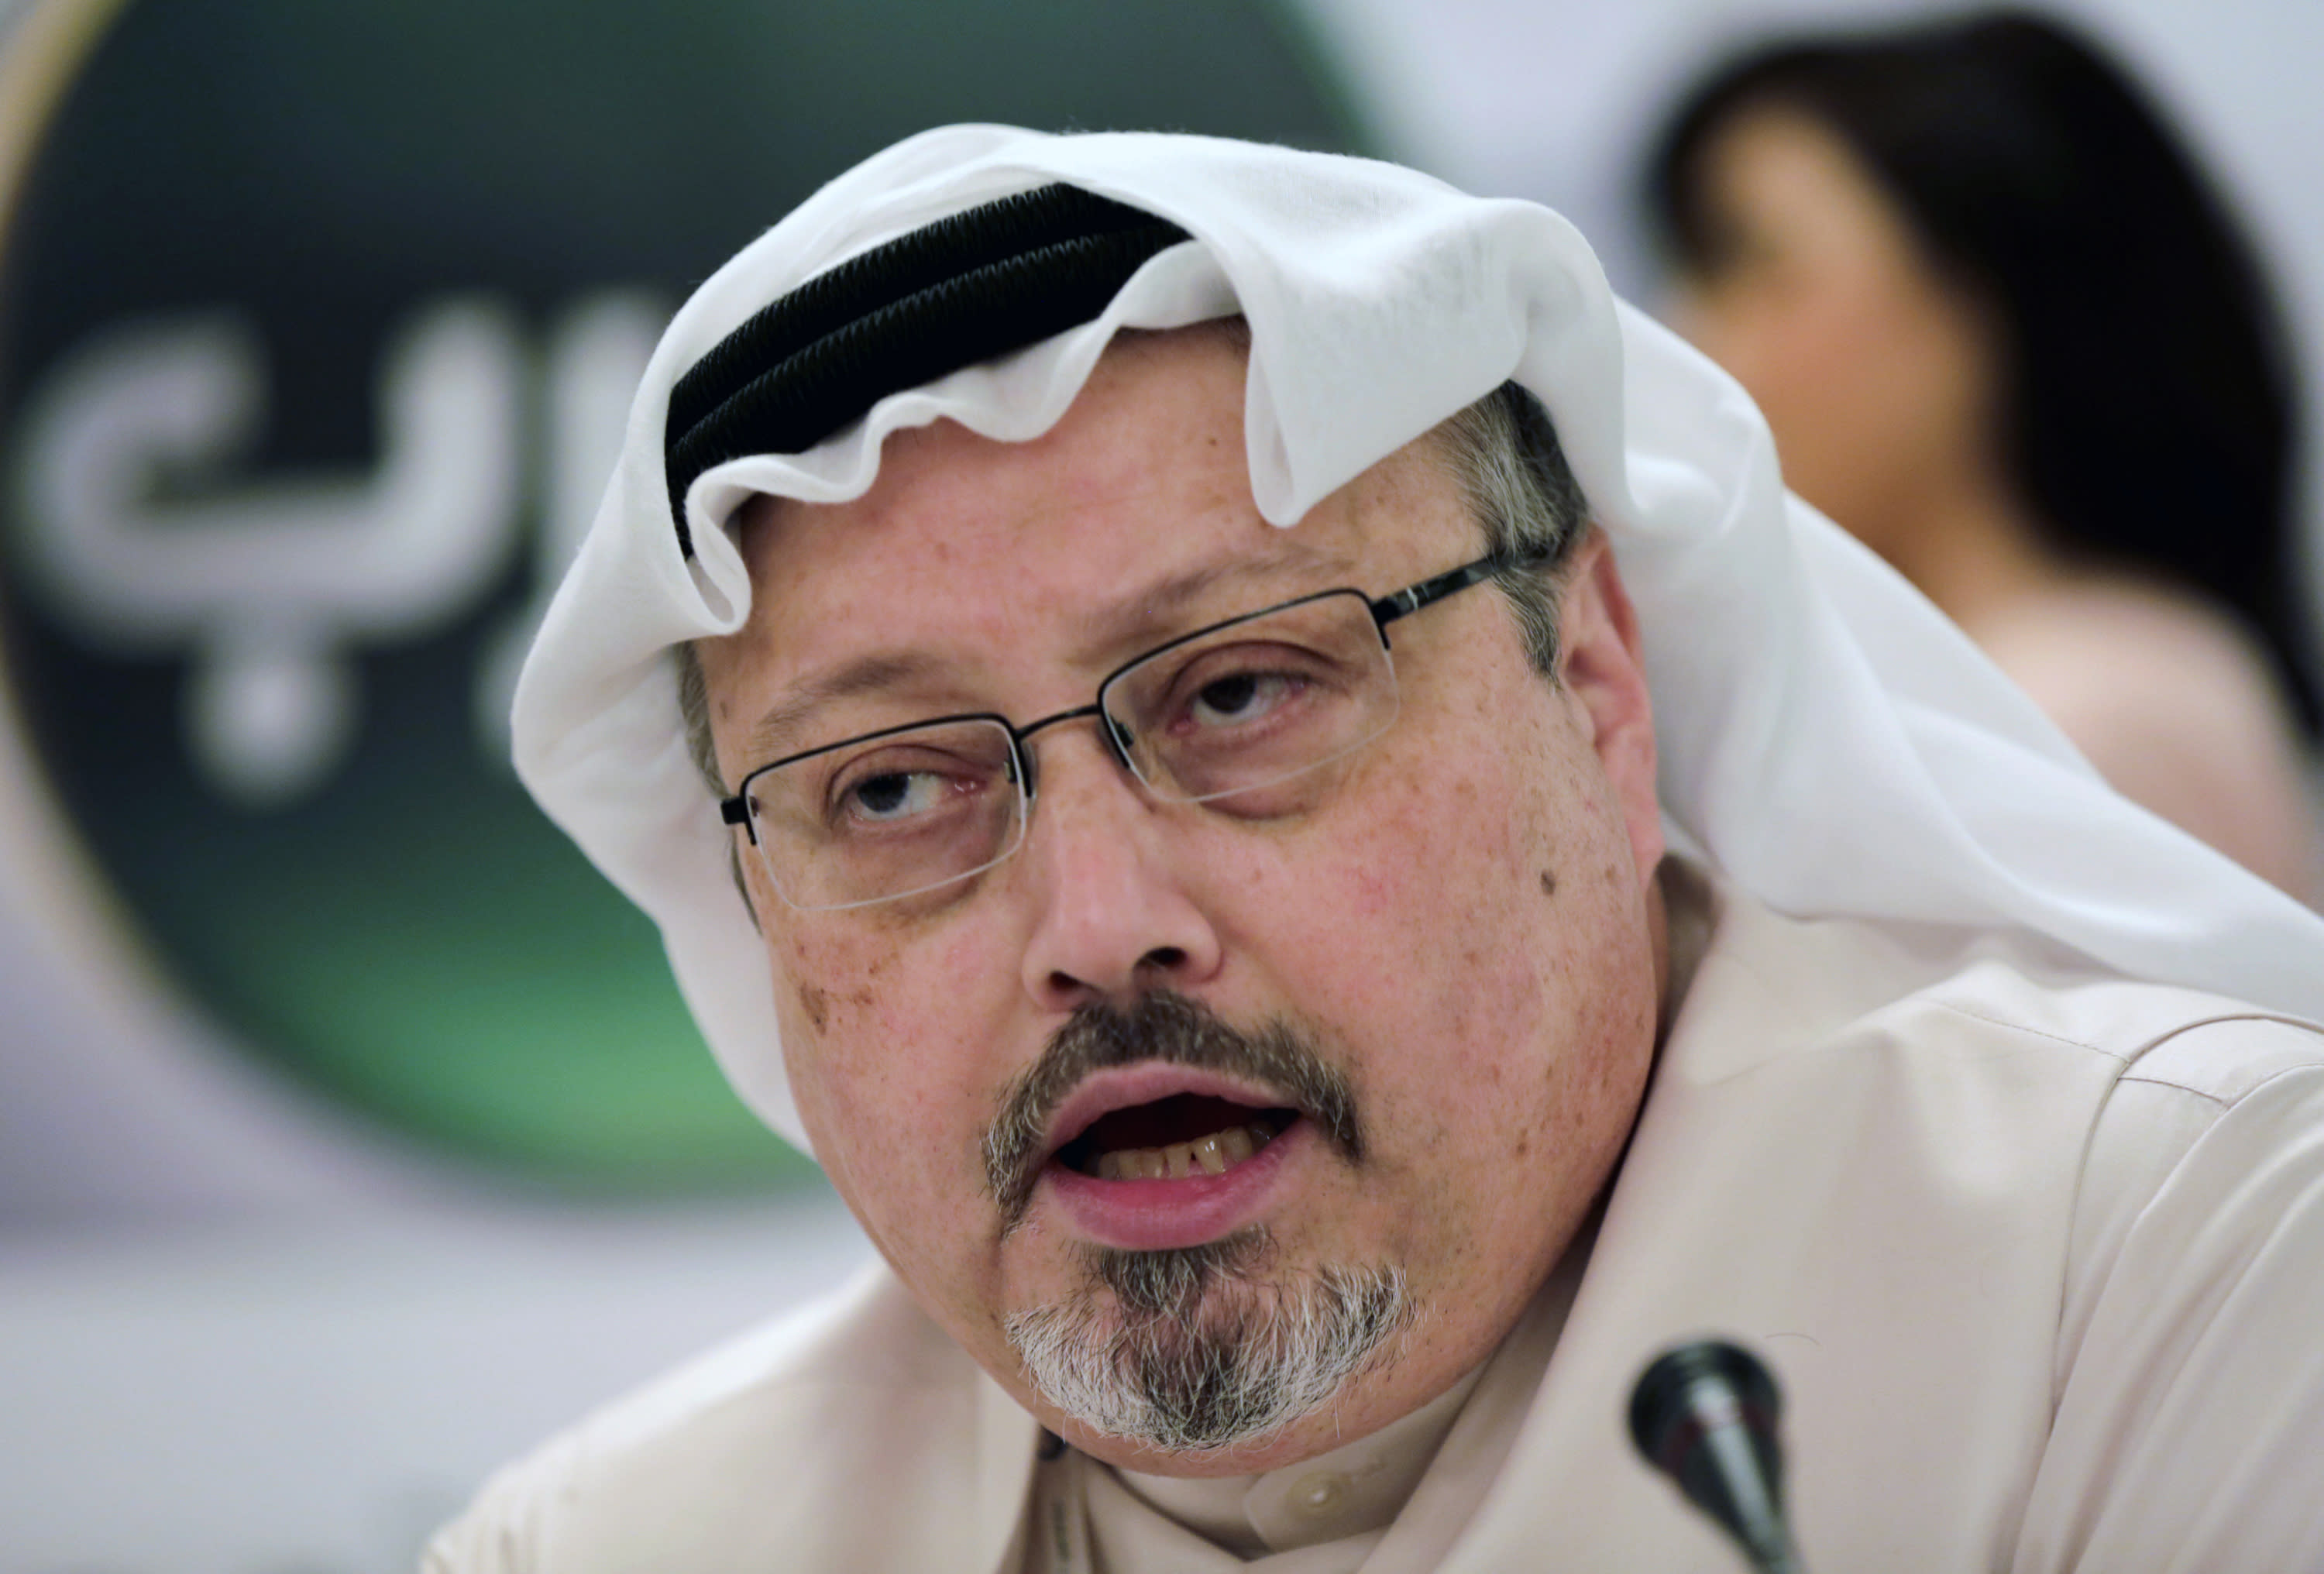 Khashoggi murder happened under my watch, crown prince tells PBS